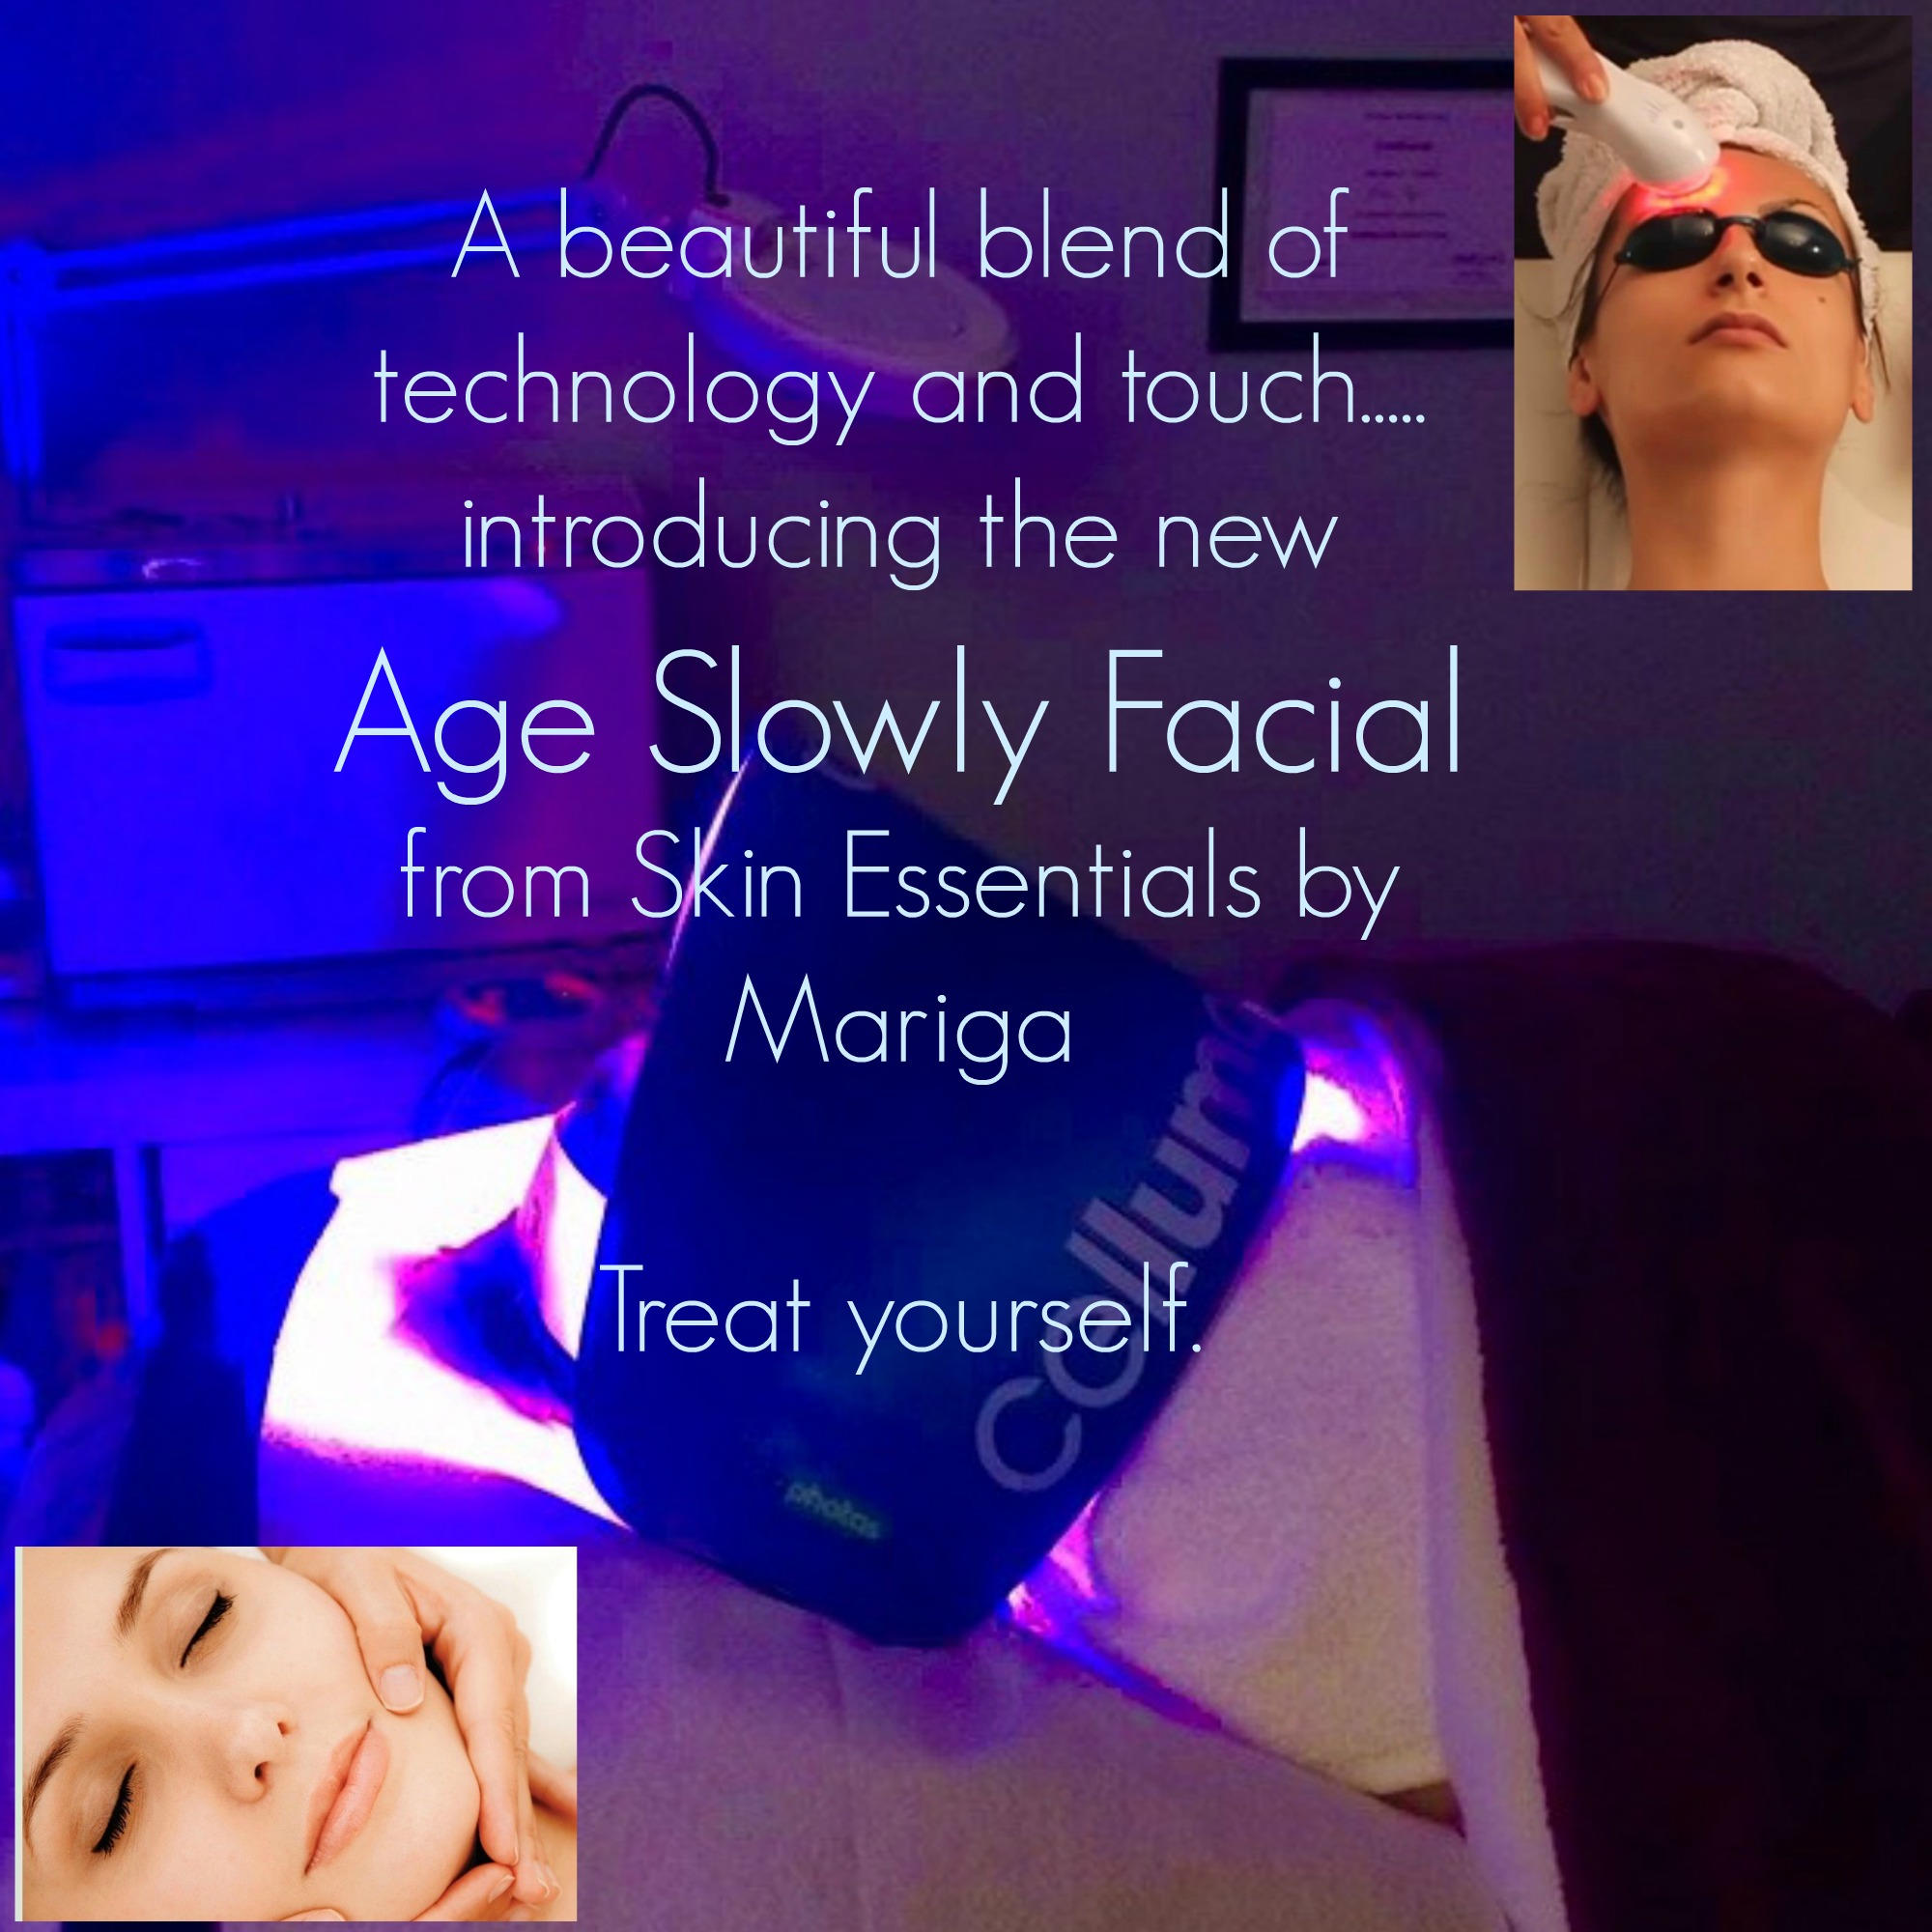 Photo of client receiving Celluma light treatment as part of the Skin Essentialls by Mariga Age Slowly Facial